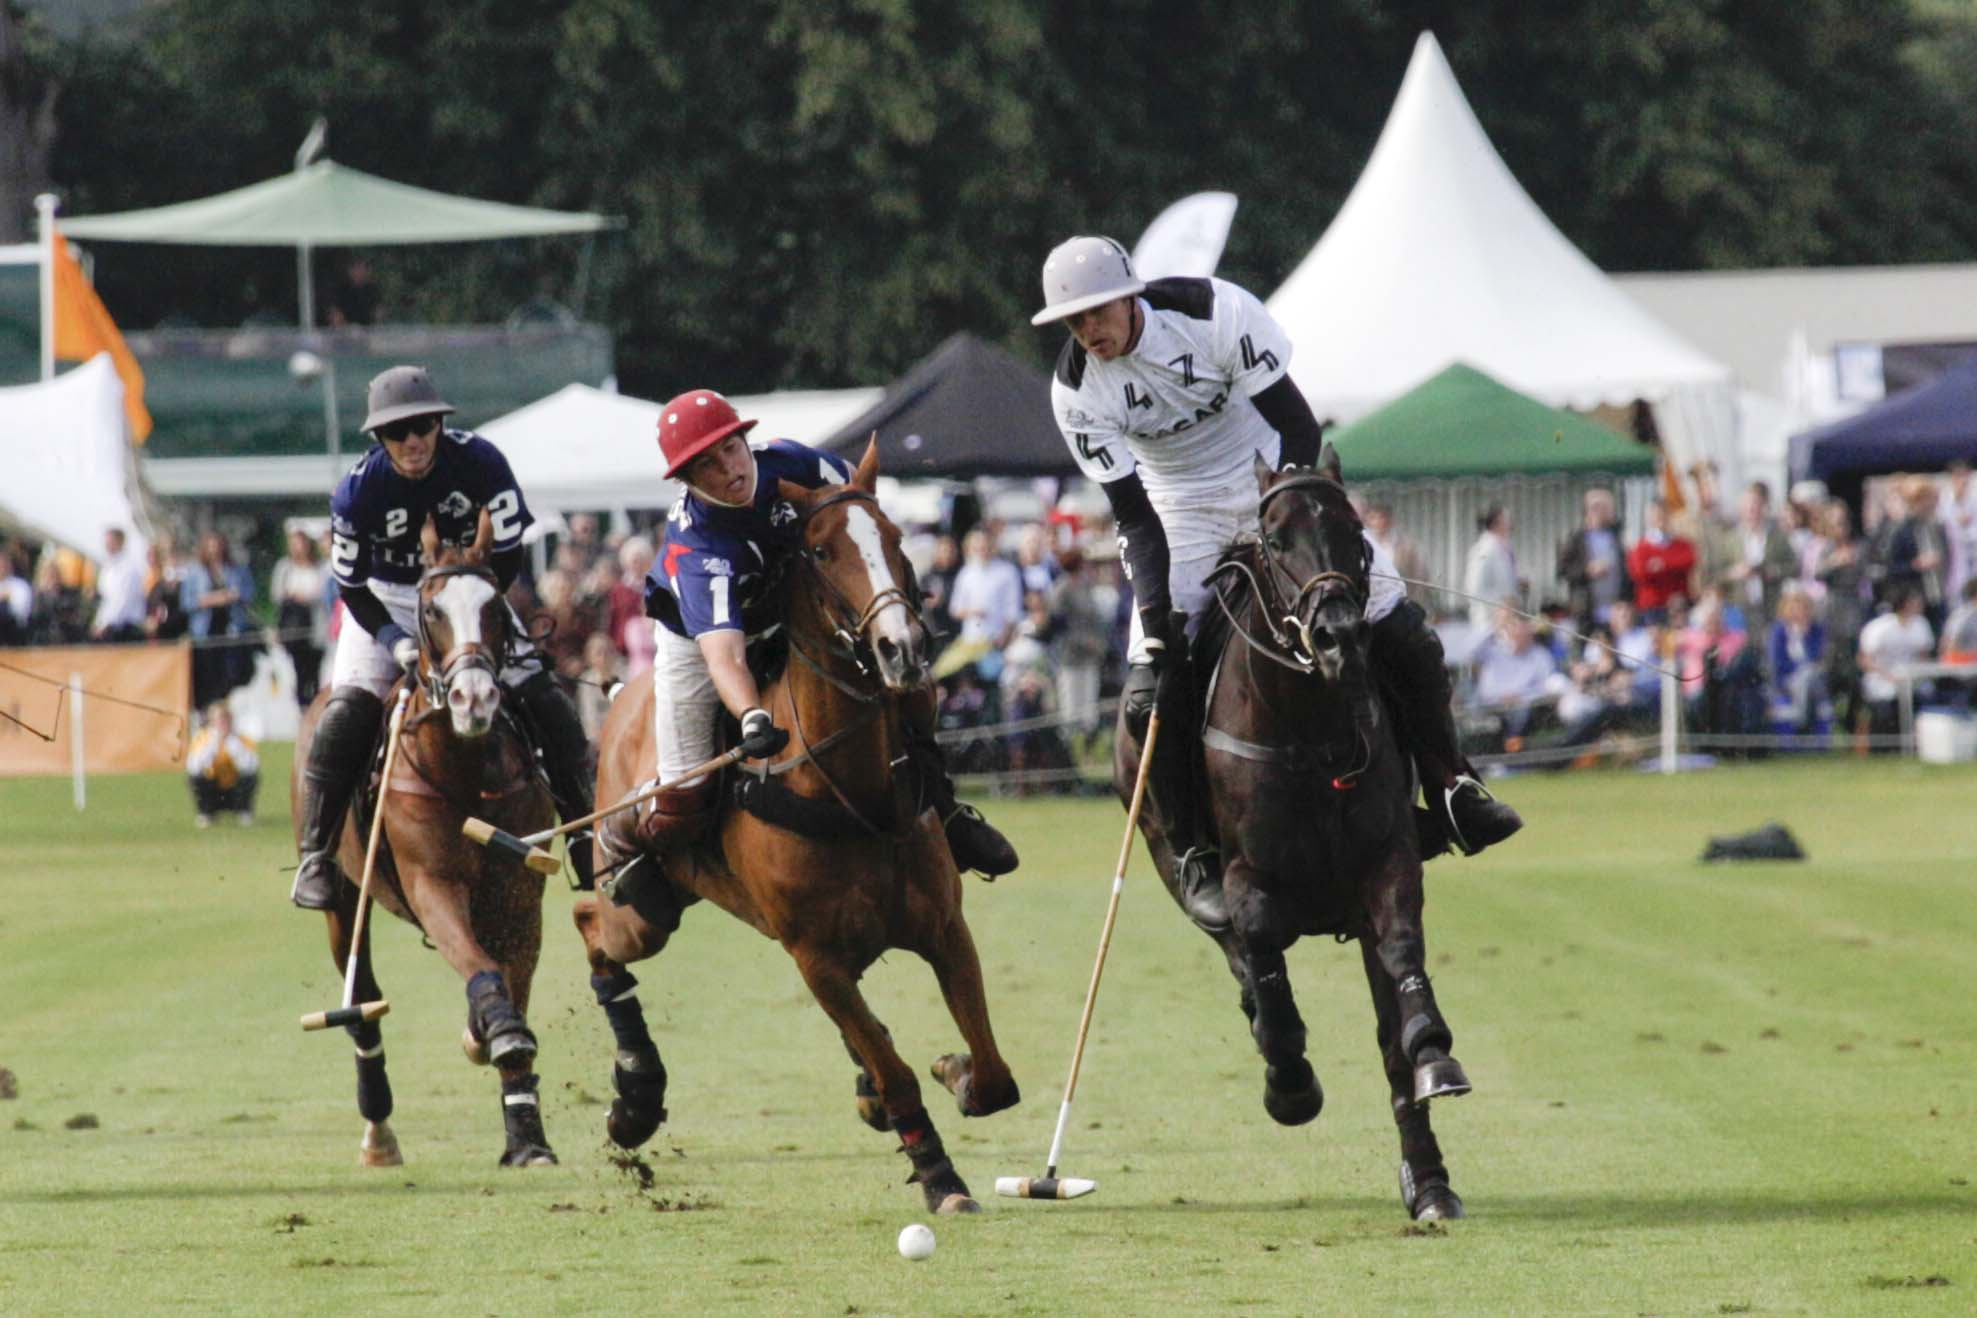 FINAL BRITISH OPEN POLO CHAMPIONSHIP 2011